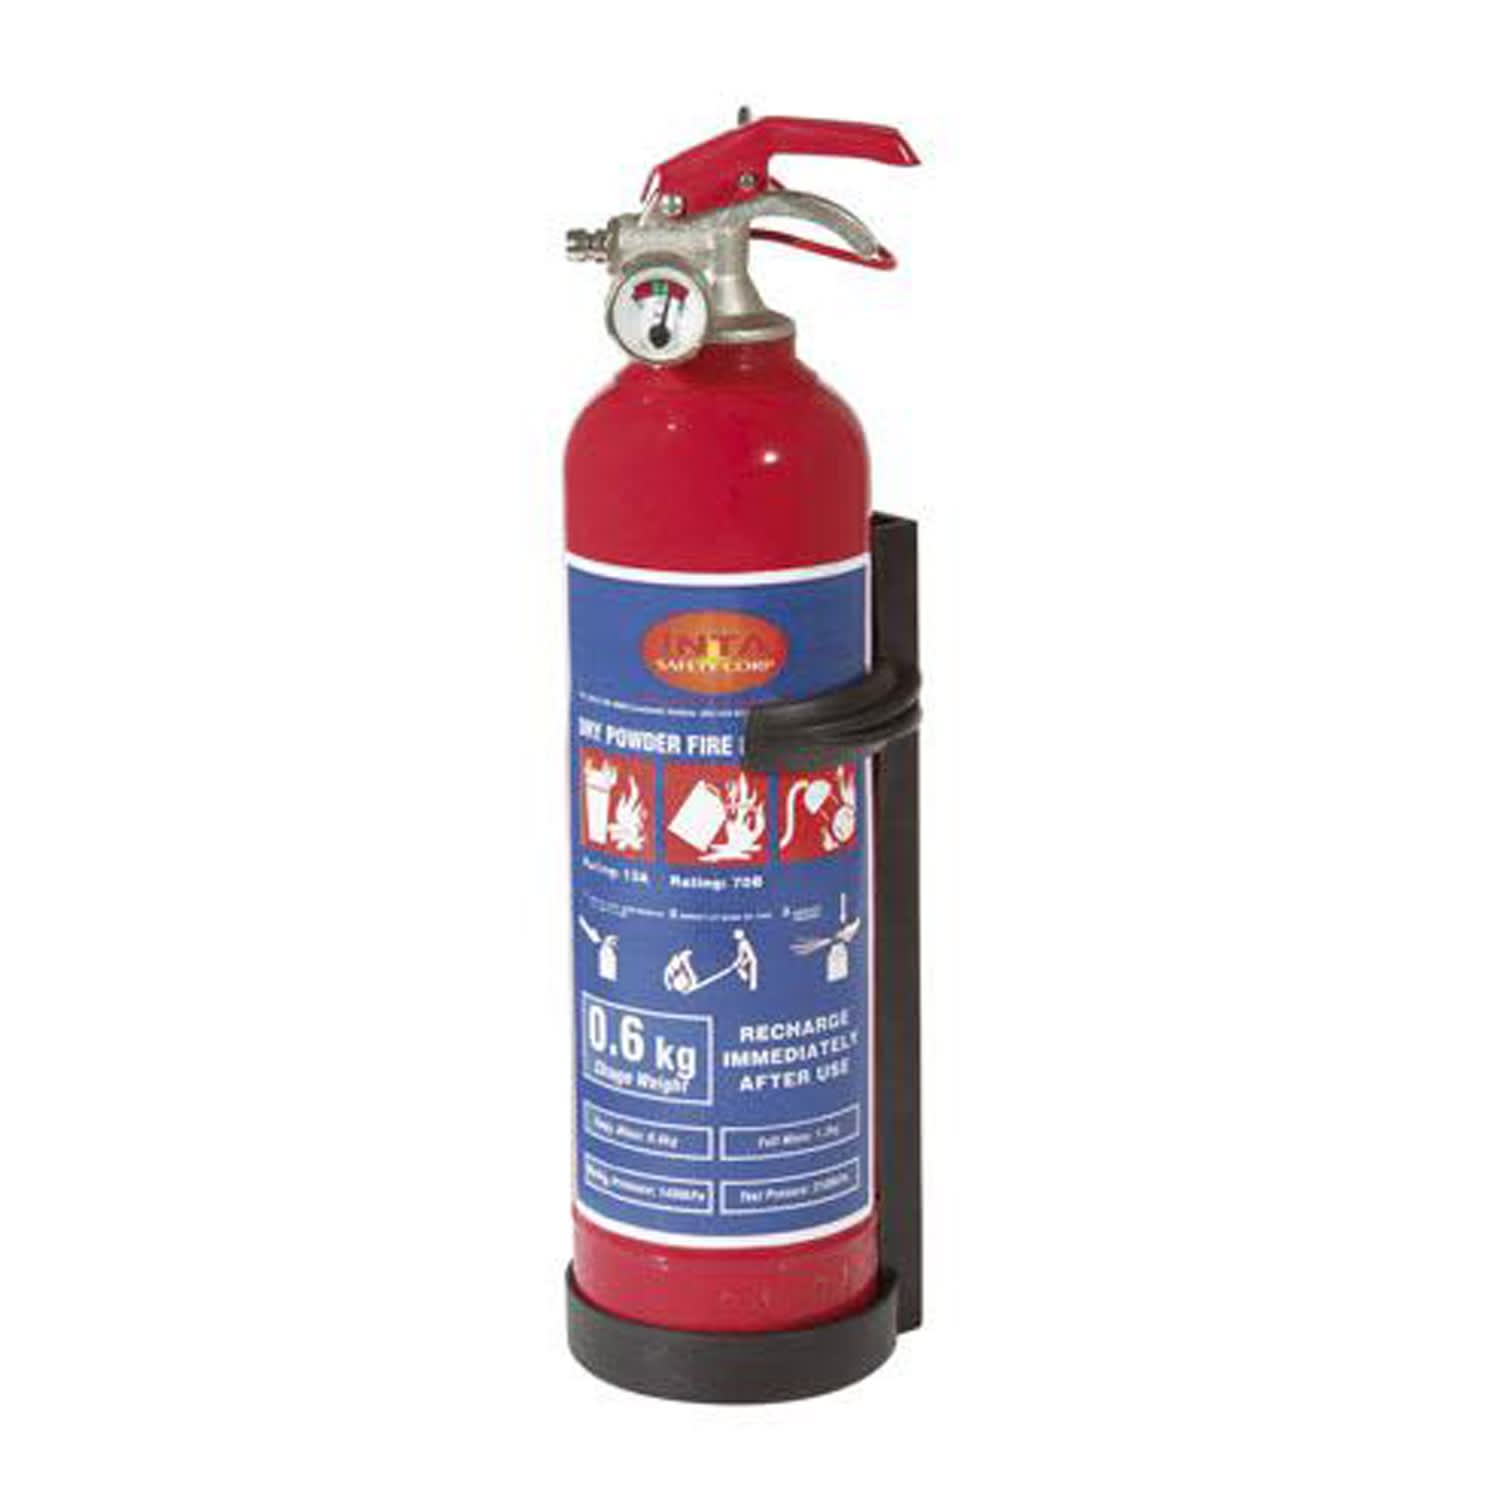 0.6Kg Fire Extinguiser with Bracket